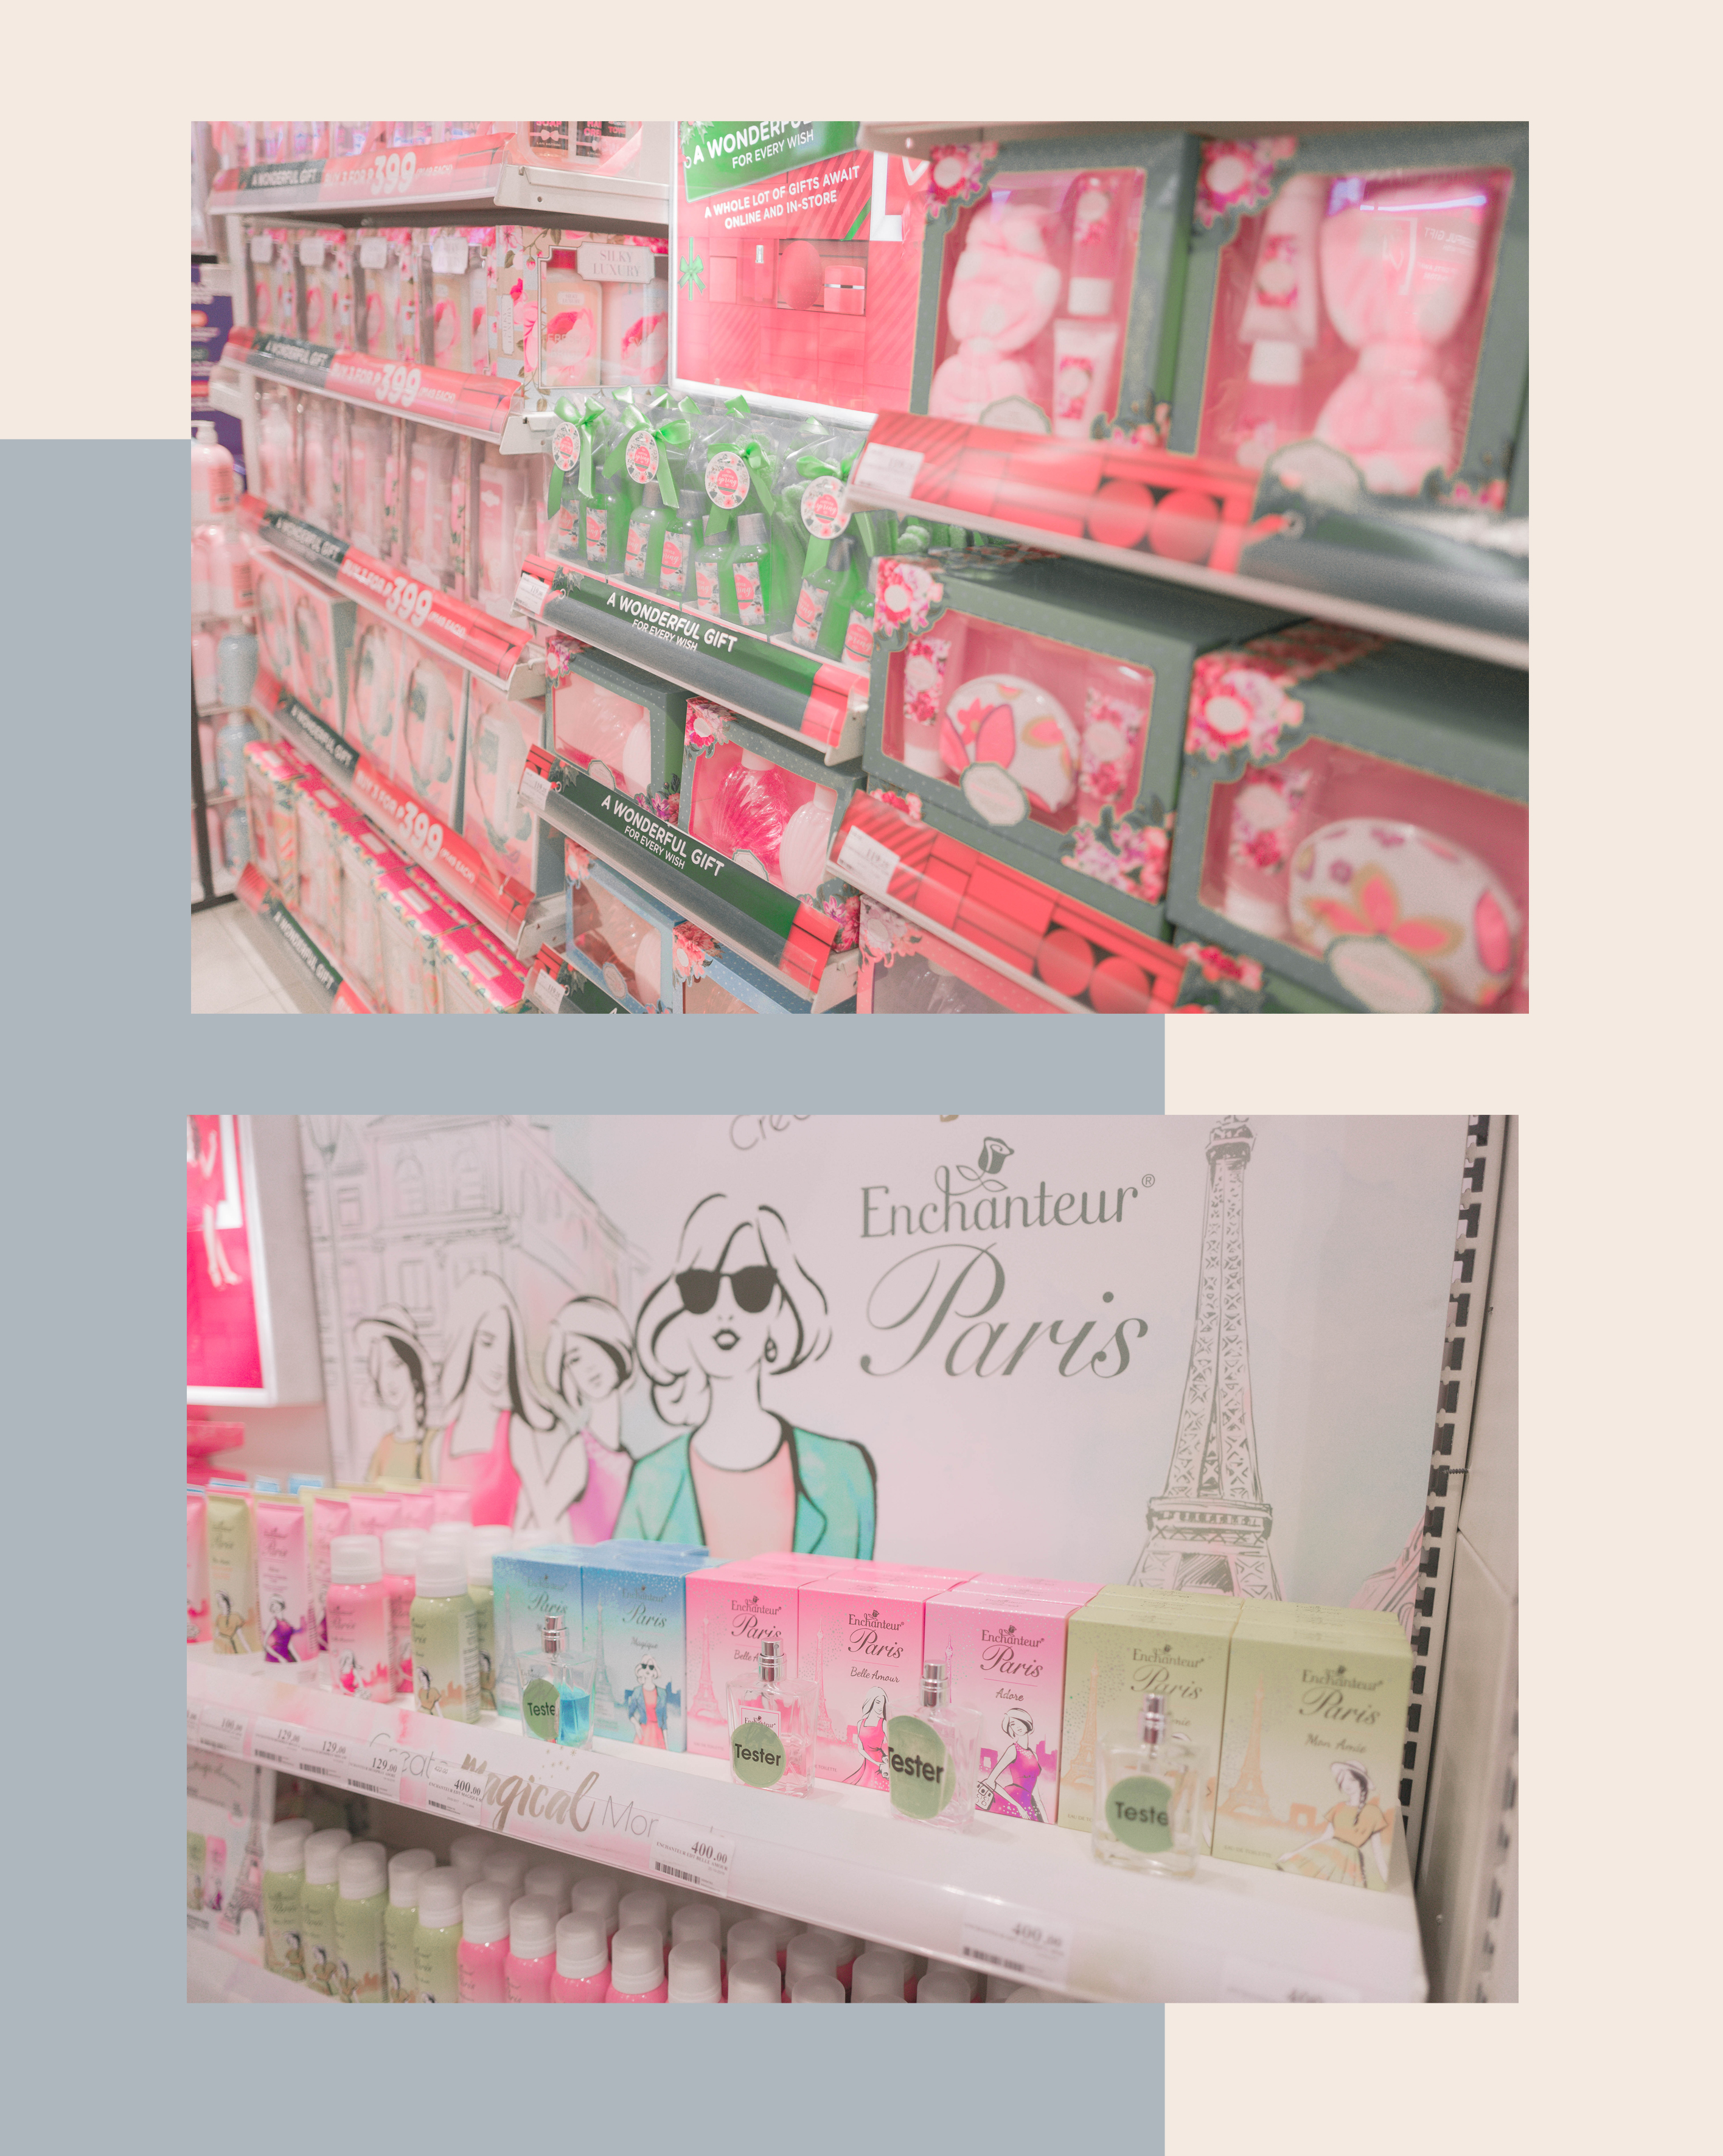 3. SM Accessories Watsons P5 (2)